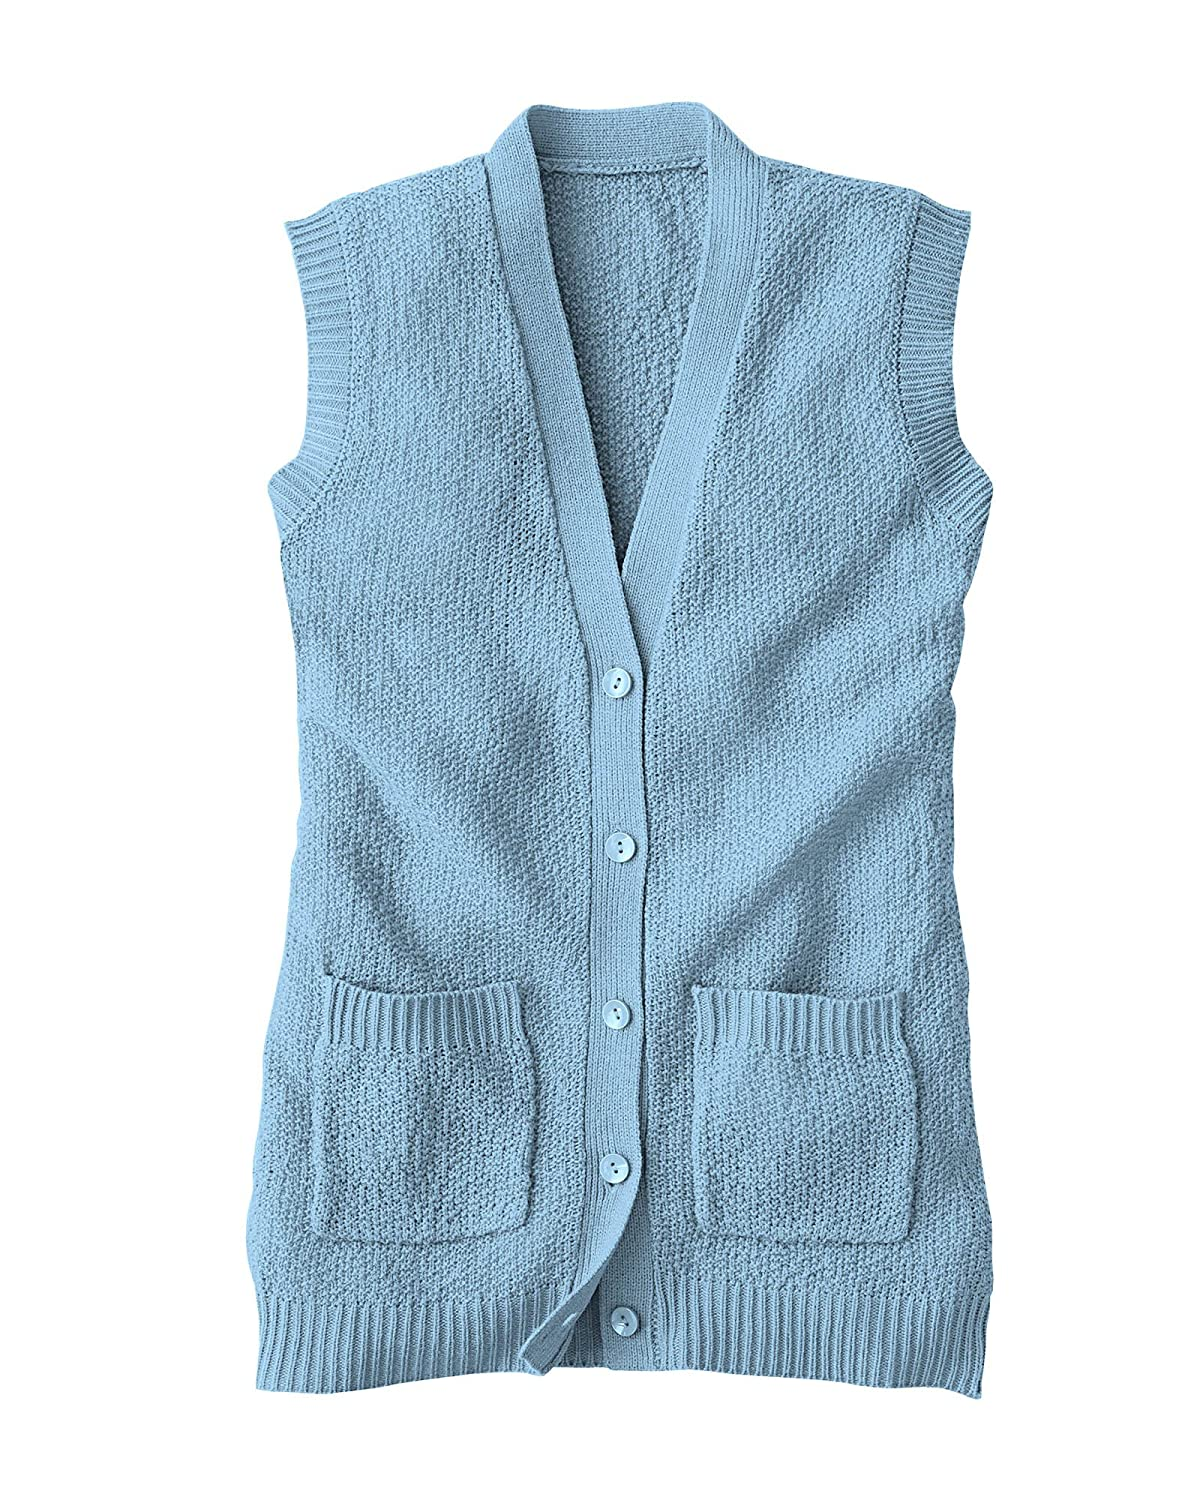 National Scramble Stitch Sweater Vest 5235